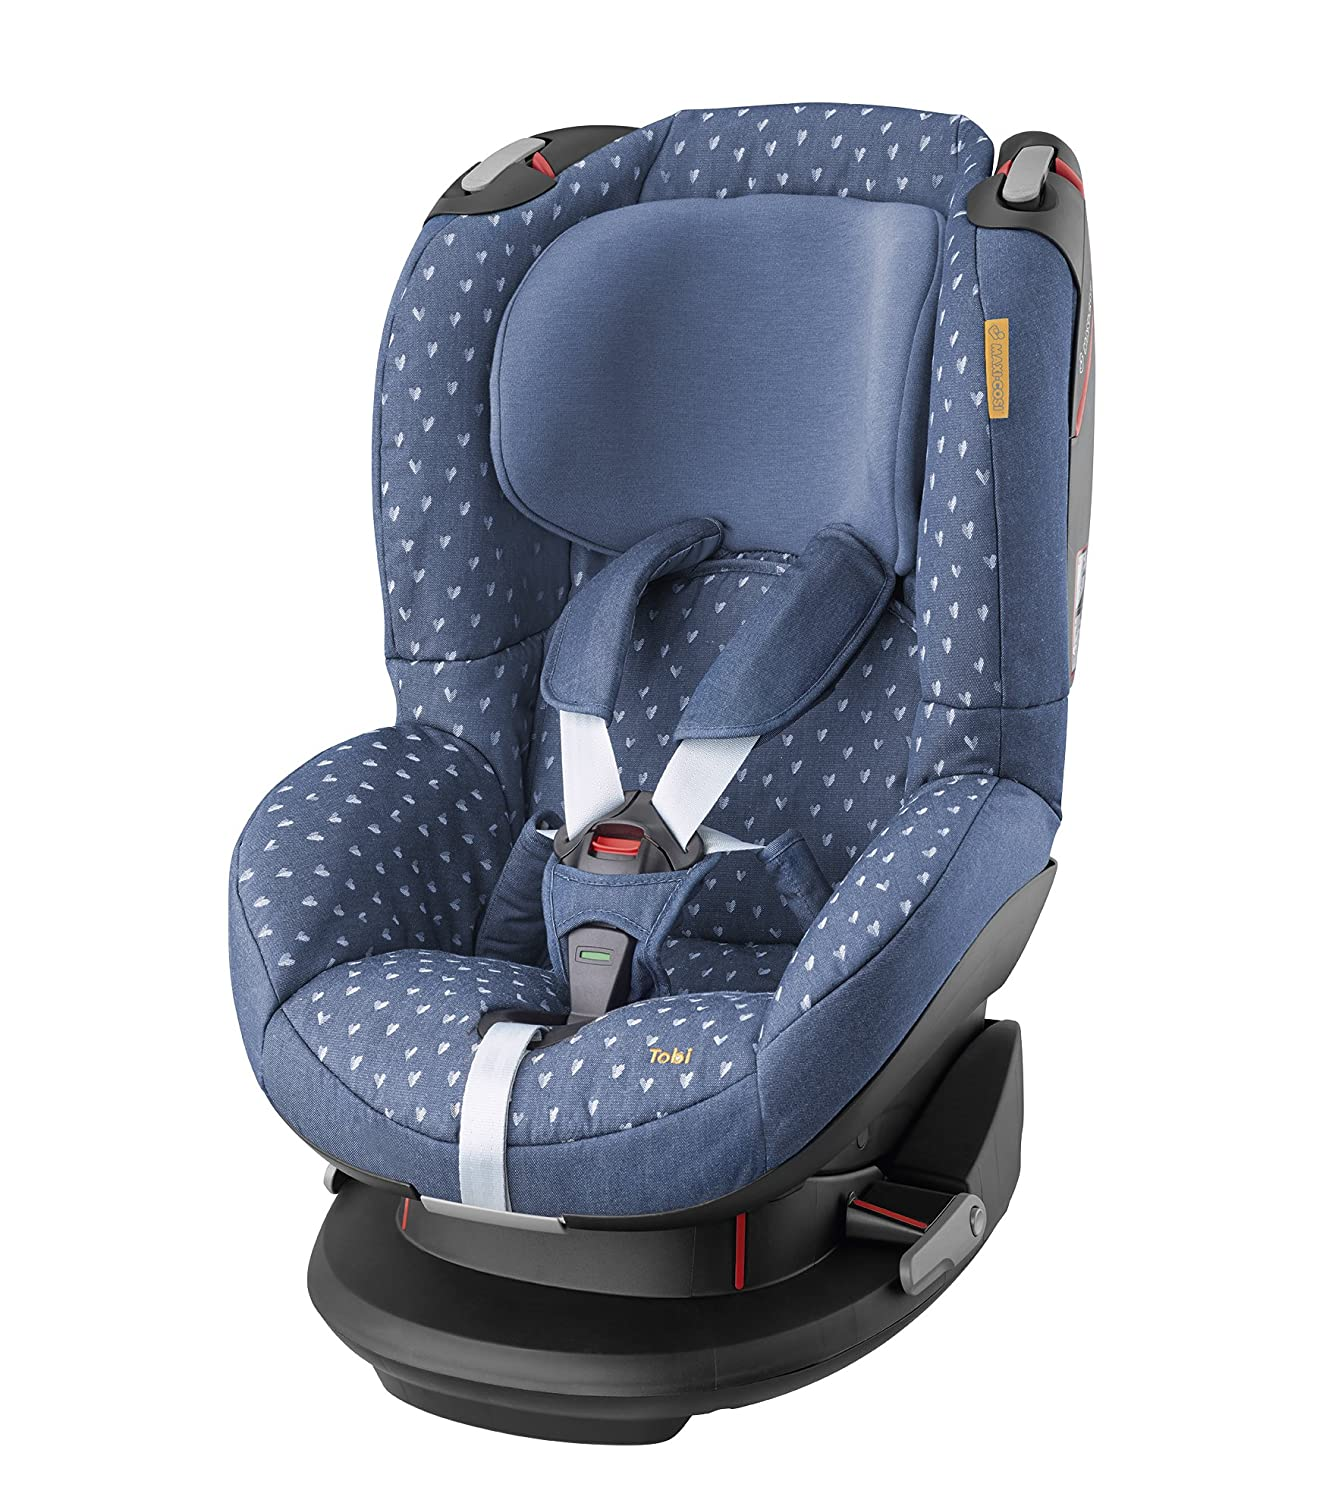 Maxi-Cosi Tobi Group 1 Car Seat, Nomad Blue Dorel UK Limited 8601243110